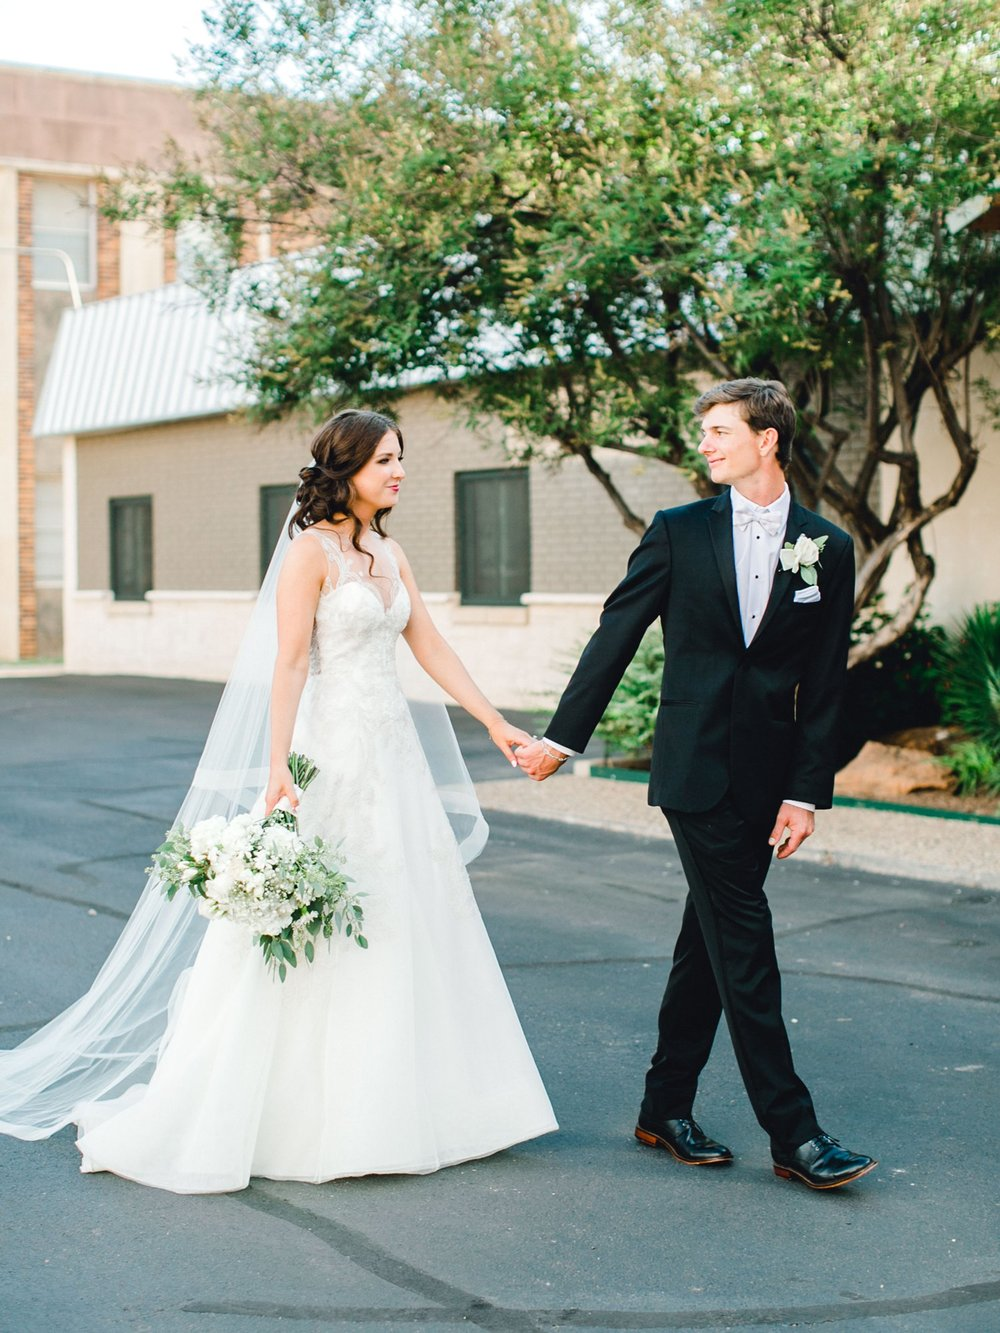 Hunter_and_Molly_Rawls_ALLEEJ_Lubbock_WEDDING_Legacy_Event_Center_0138.jpg